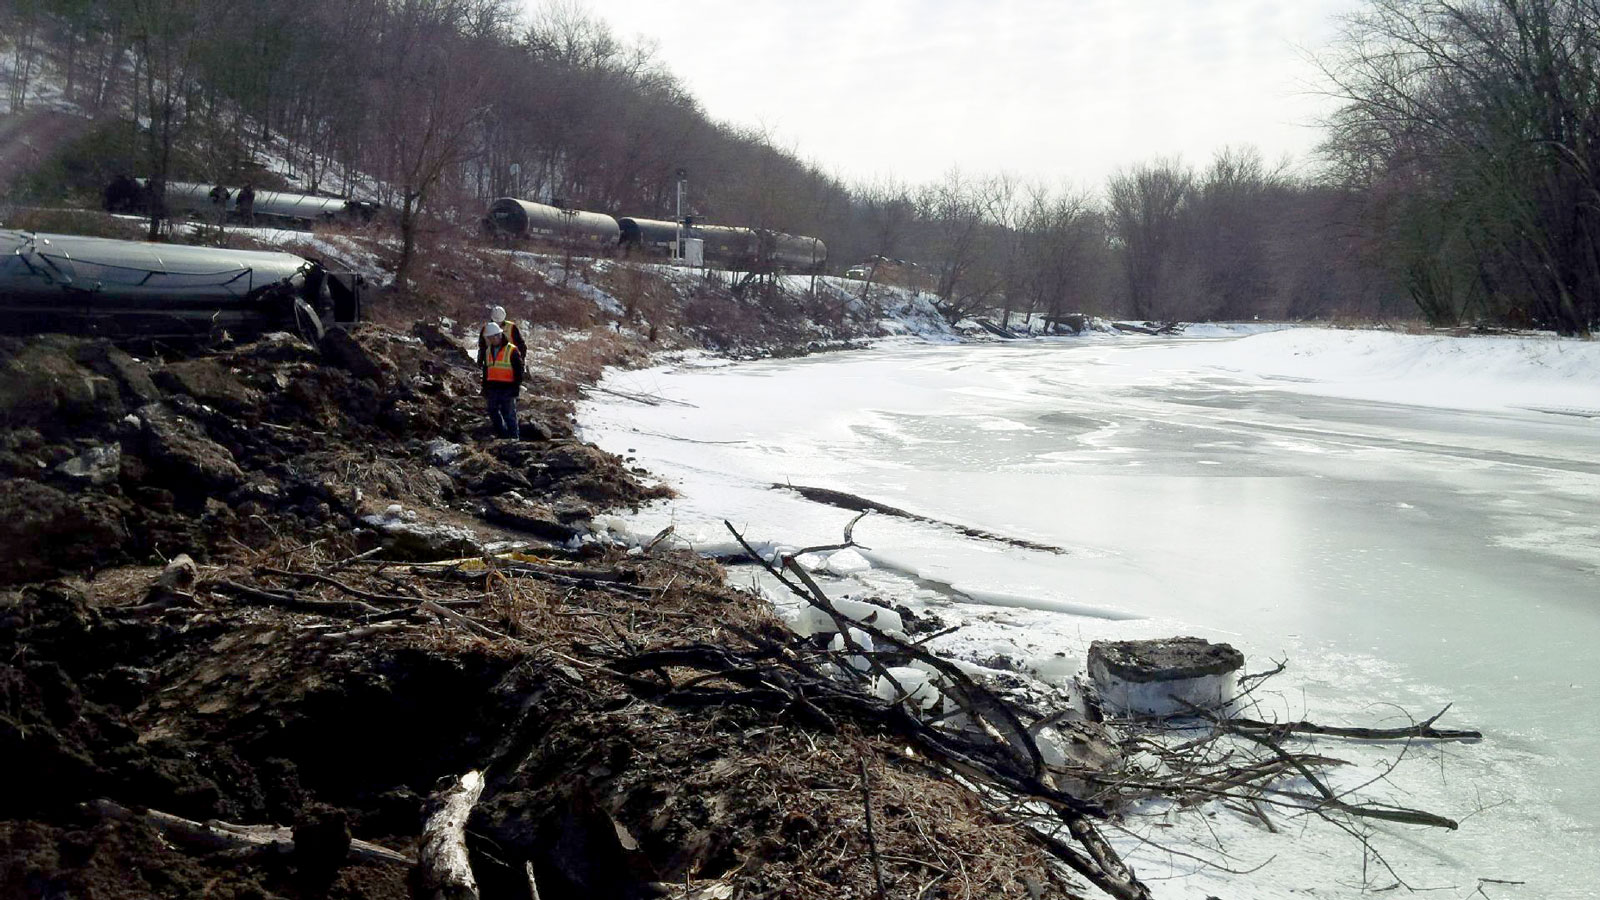 <h4>Oil transported via train or pipeline</h4> <h5>Since 2000, 21 railway spills and 734 pipeline spills of crude oil over 1,000 gallons have been reported by the Pipeline and Hazardous Materials Safety Administration.</h5><em>U.S. Environmental Protection Agency</em>